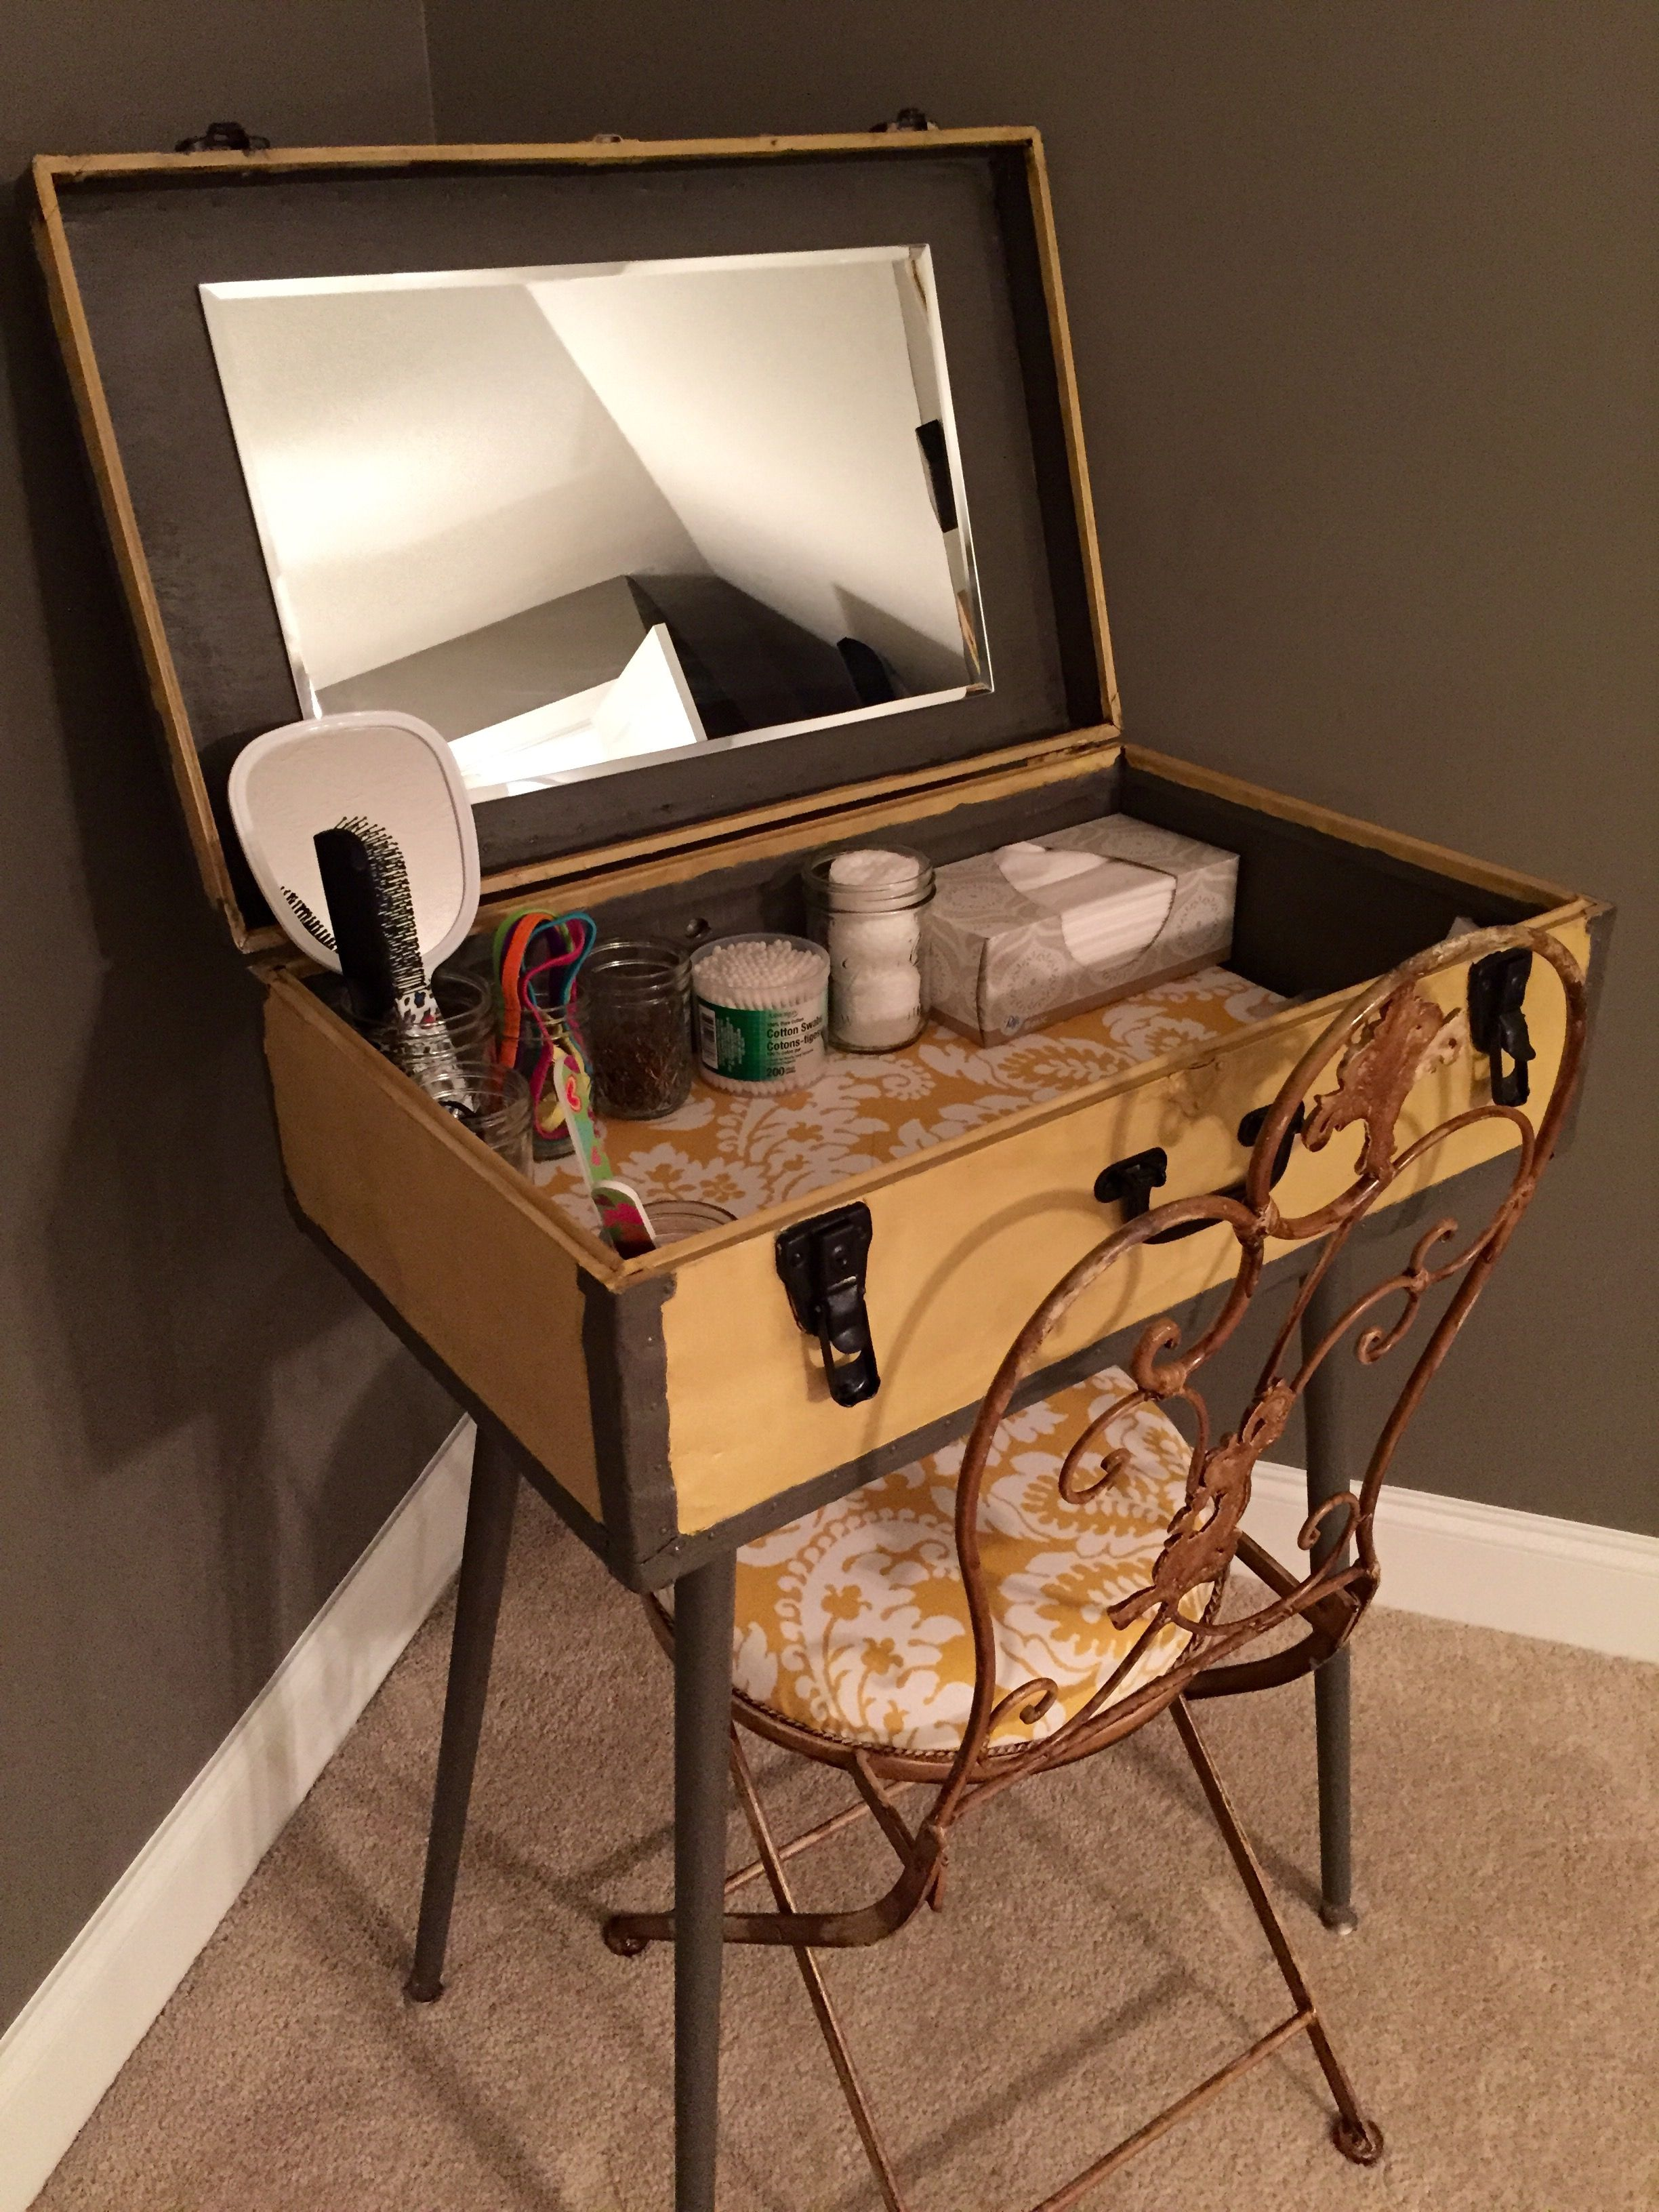 DIY antique suitcase repurposed as a vanity for my guest